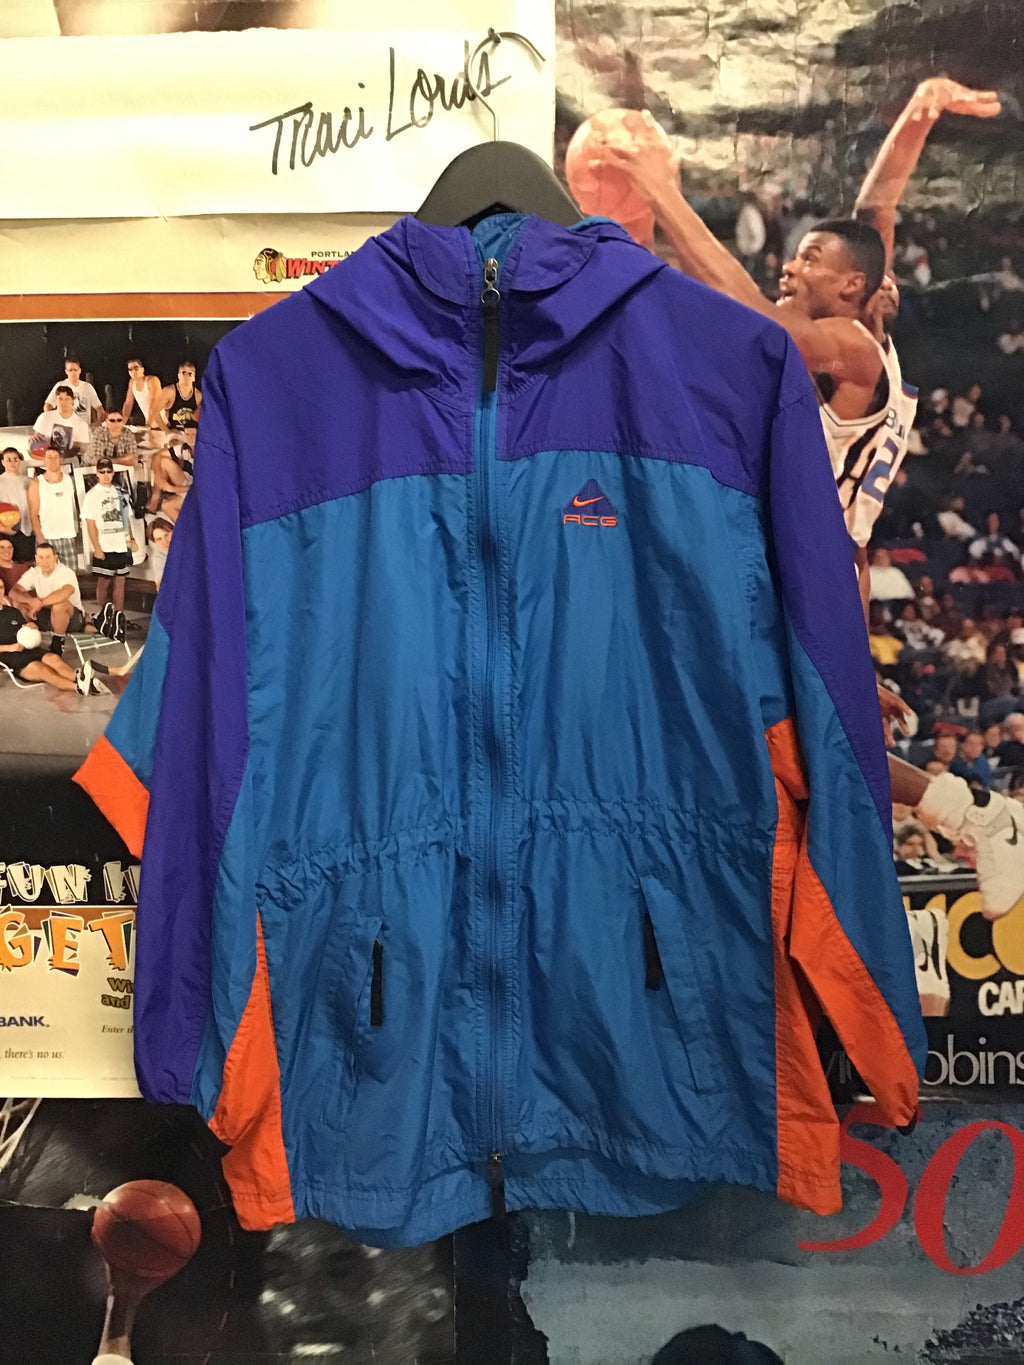 Nike ACG Jacket Medium - Decades of dope